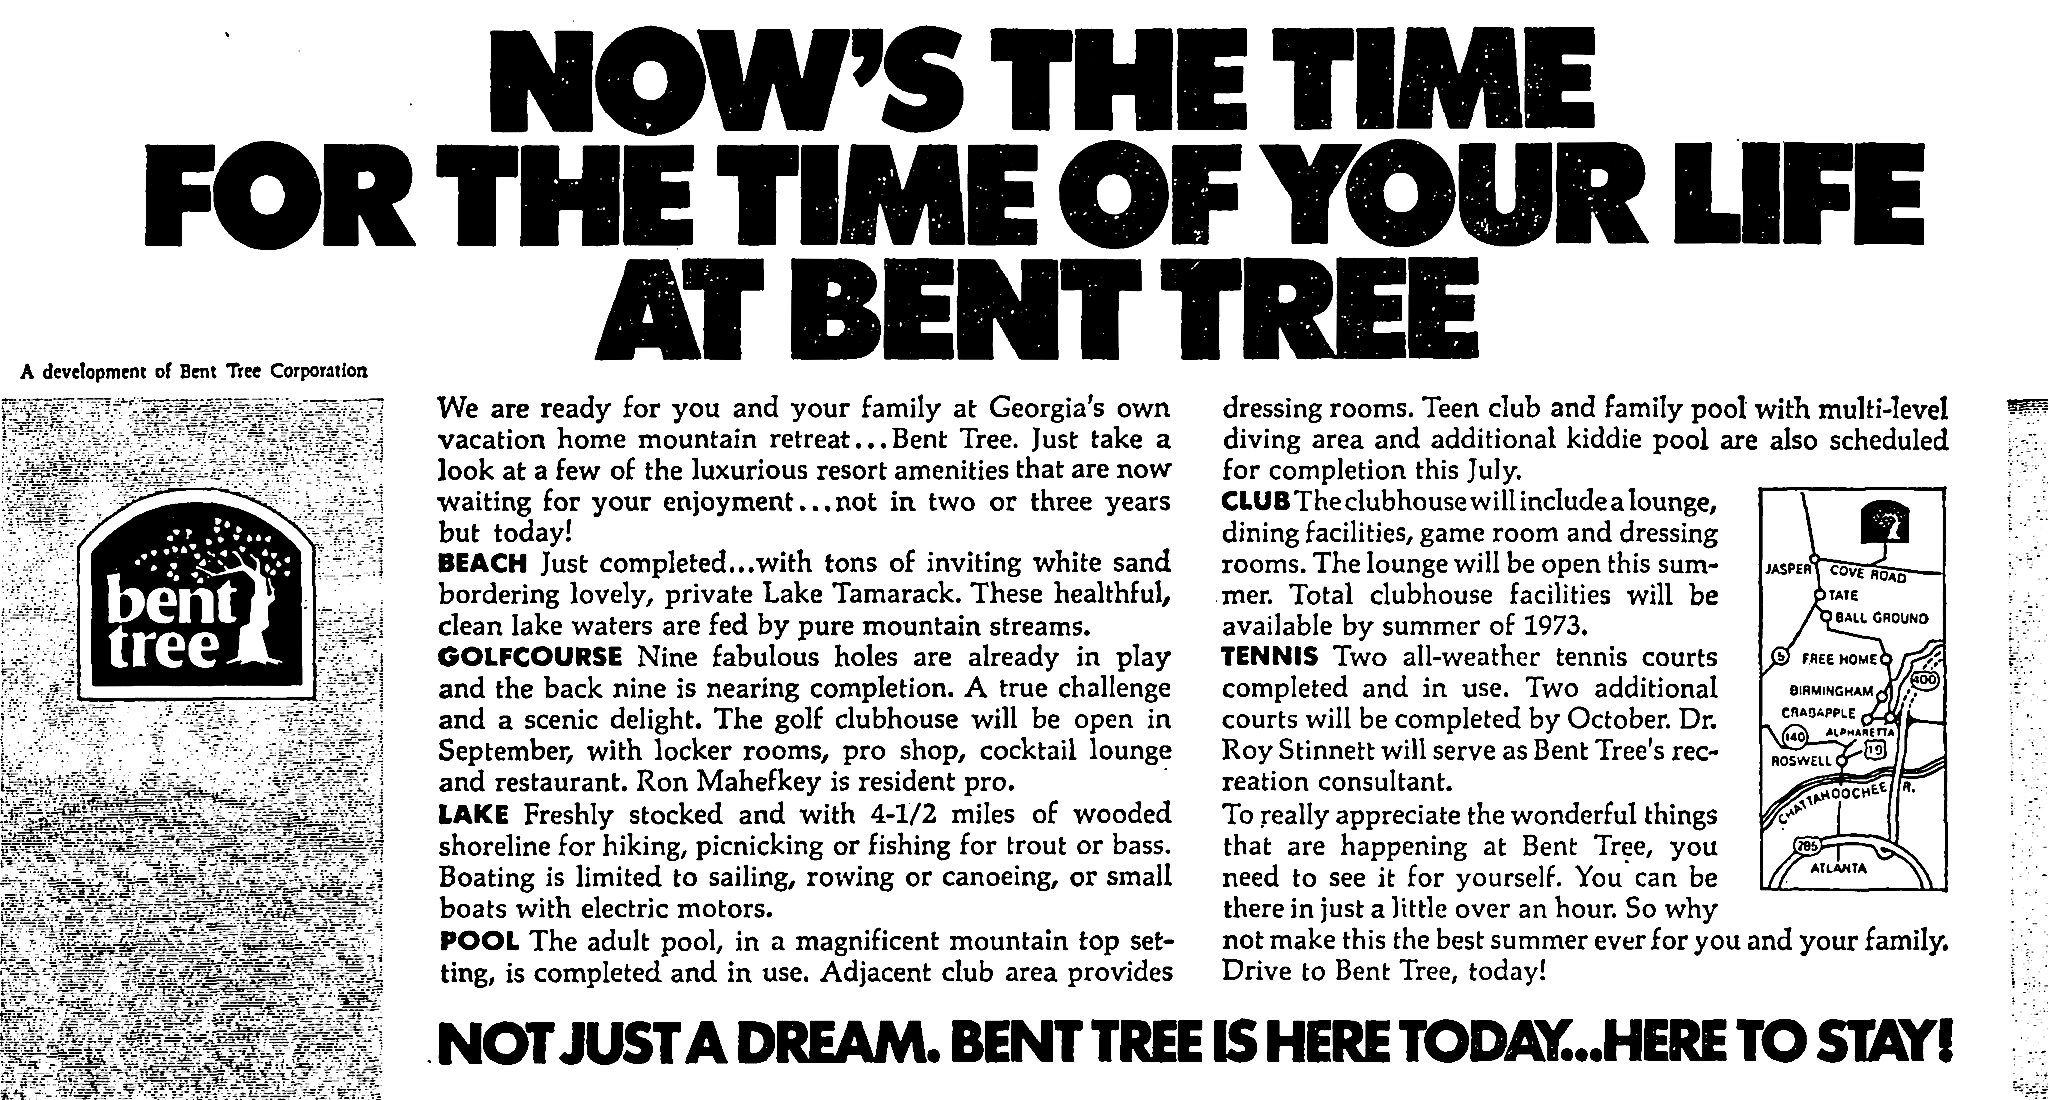 June 1972 advertisement for Bent Tree